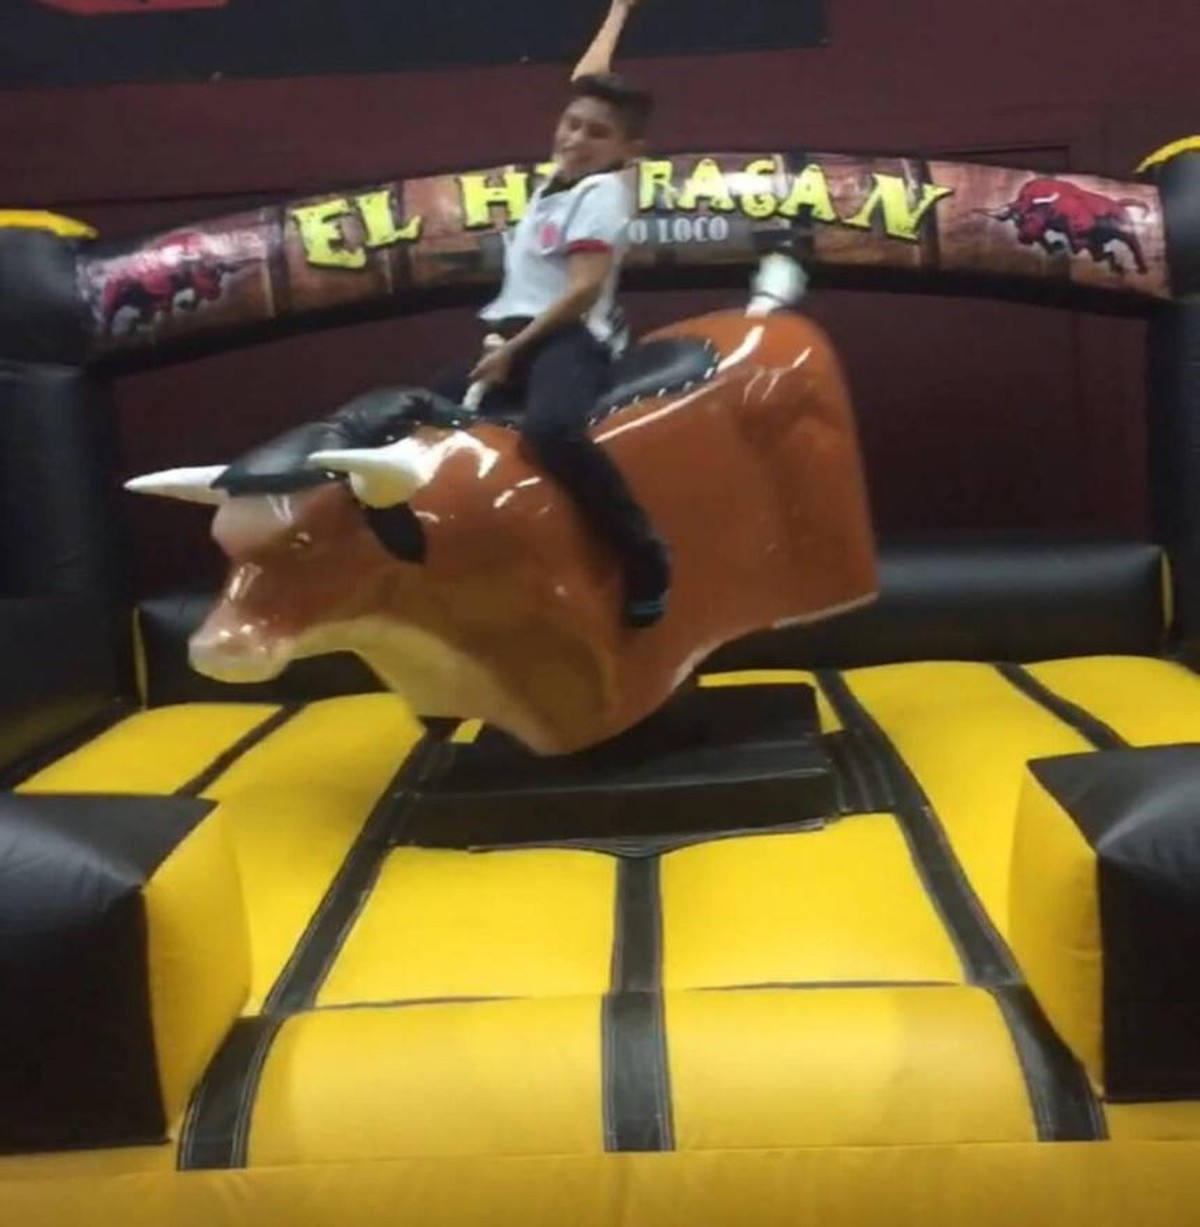 things to know when renting mechanical bulls